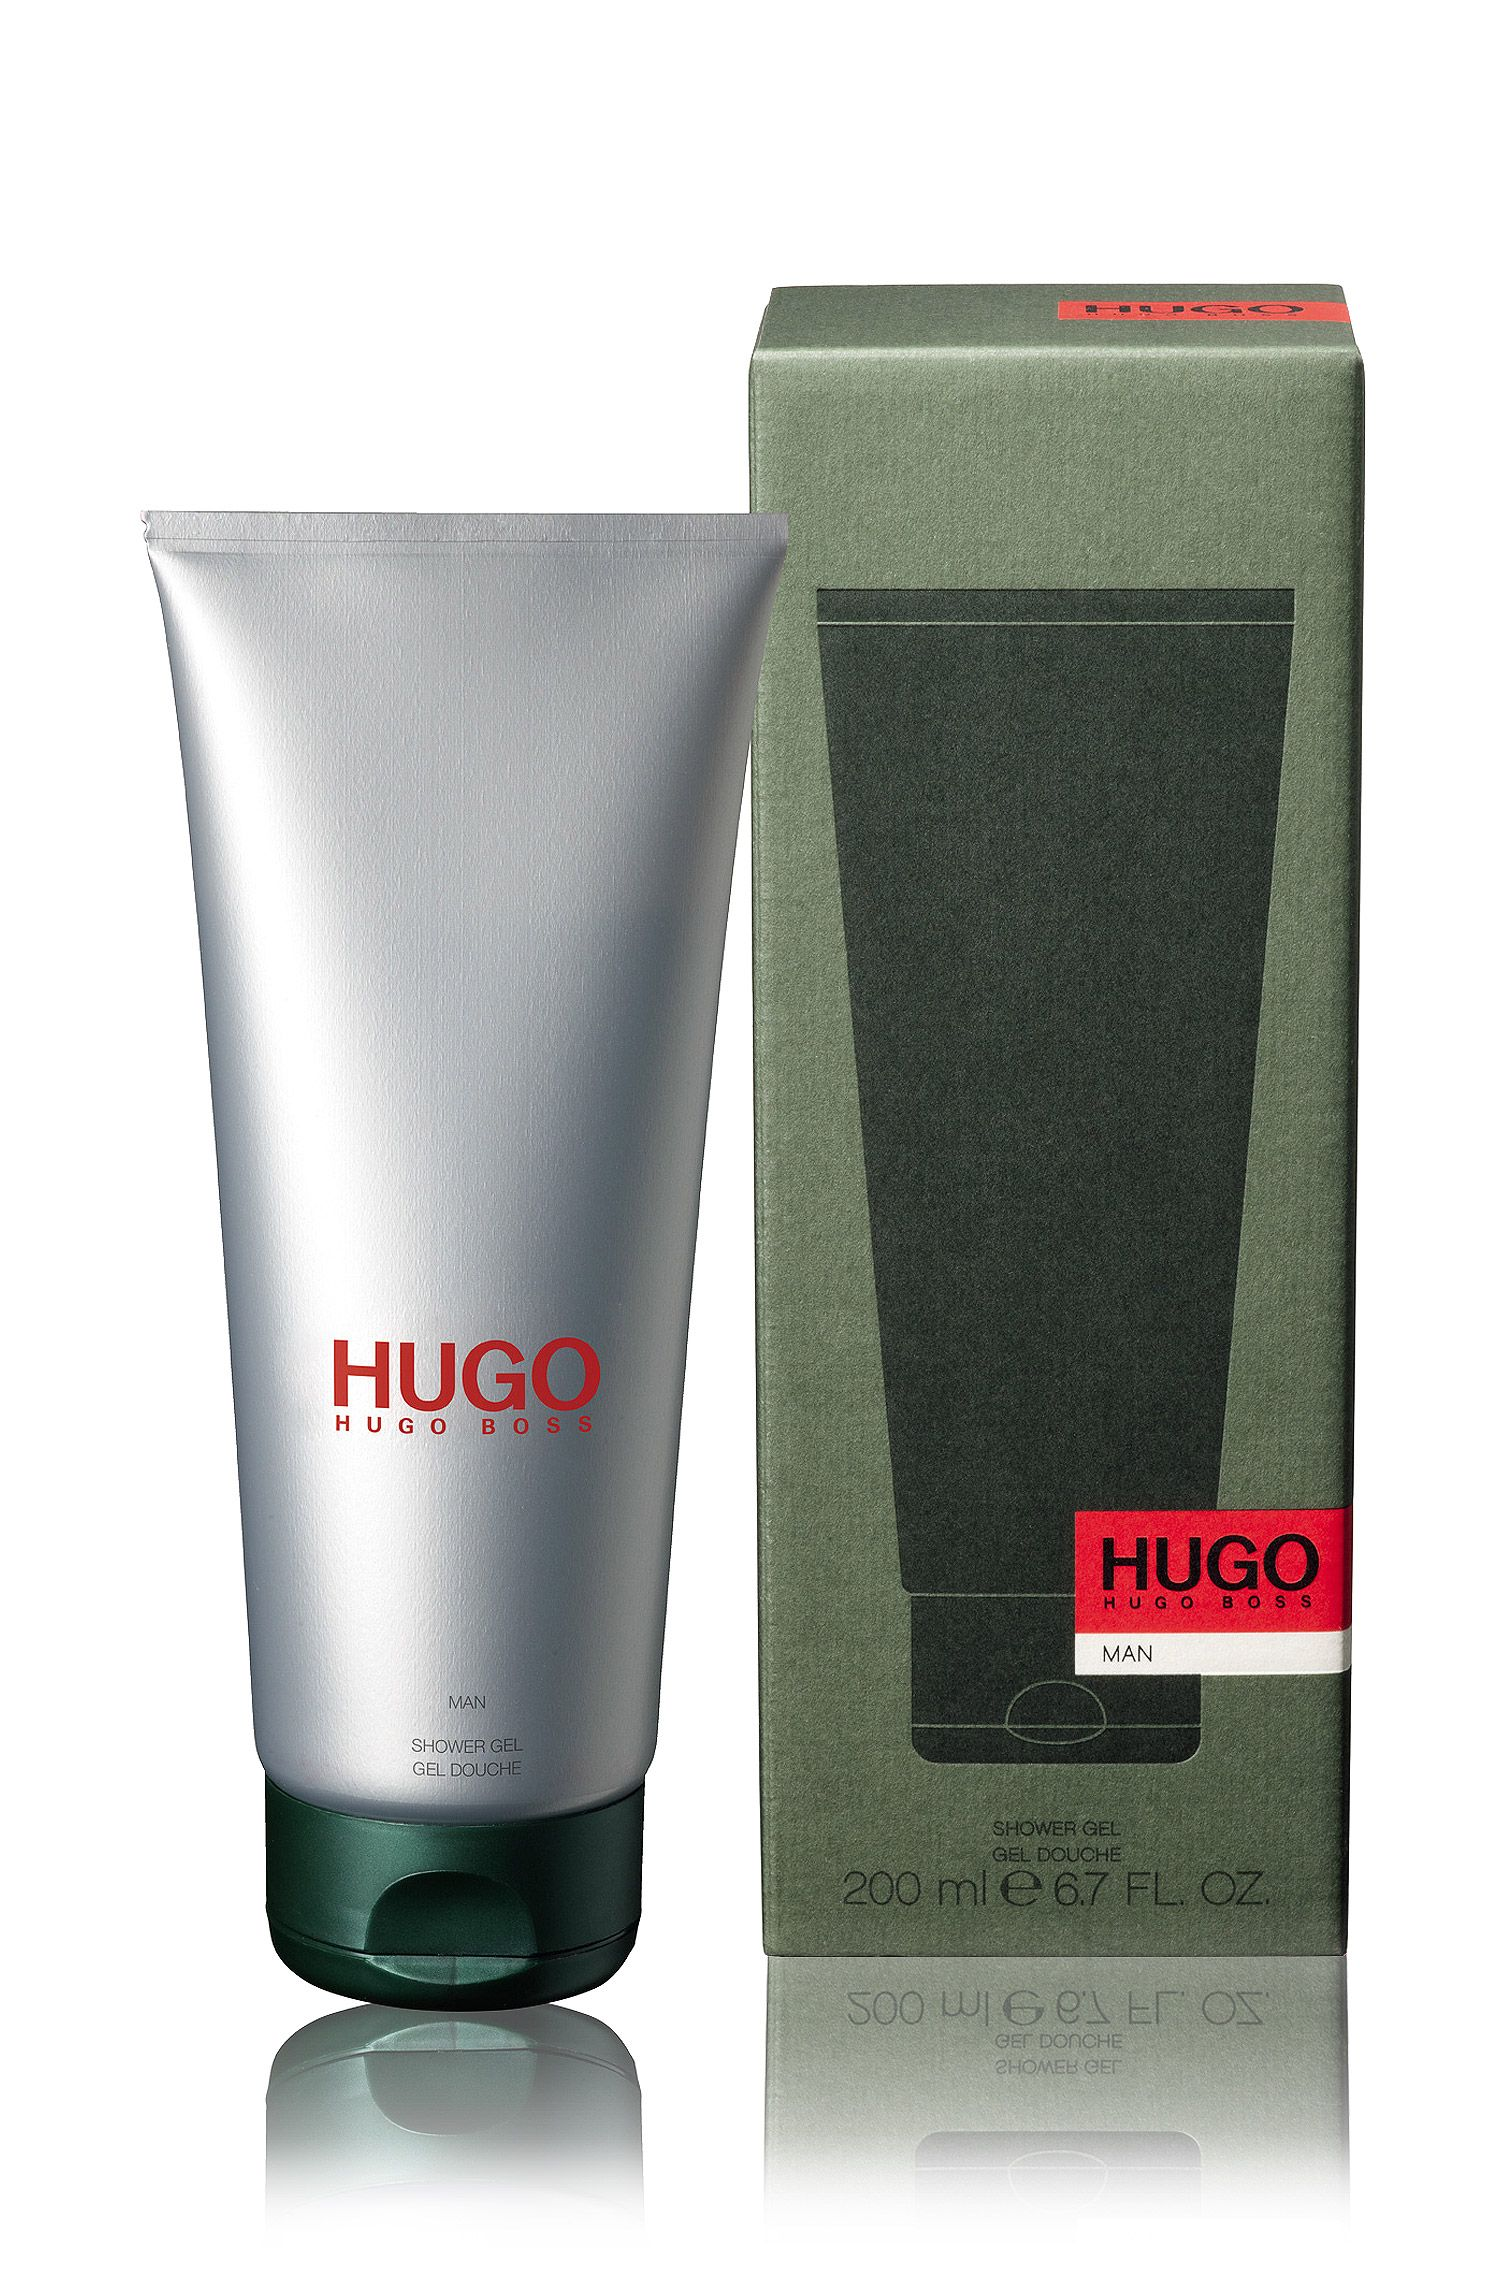 HUGO Man douchegel 200 ml